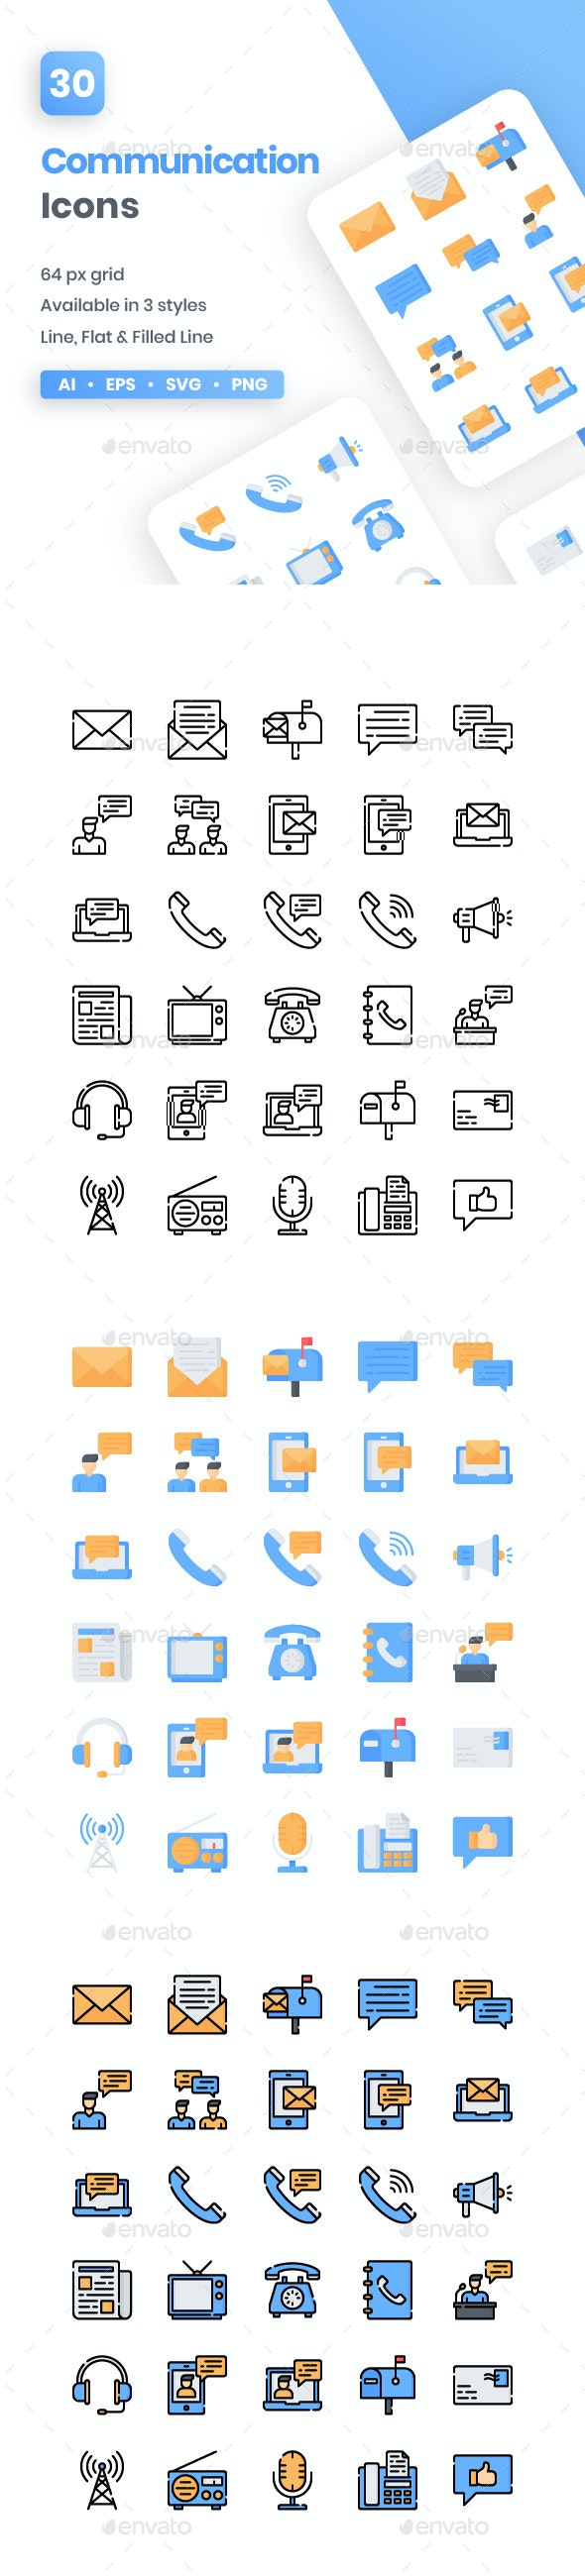 Communication Icons - Media Icons